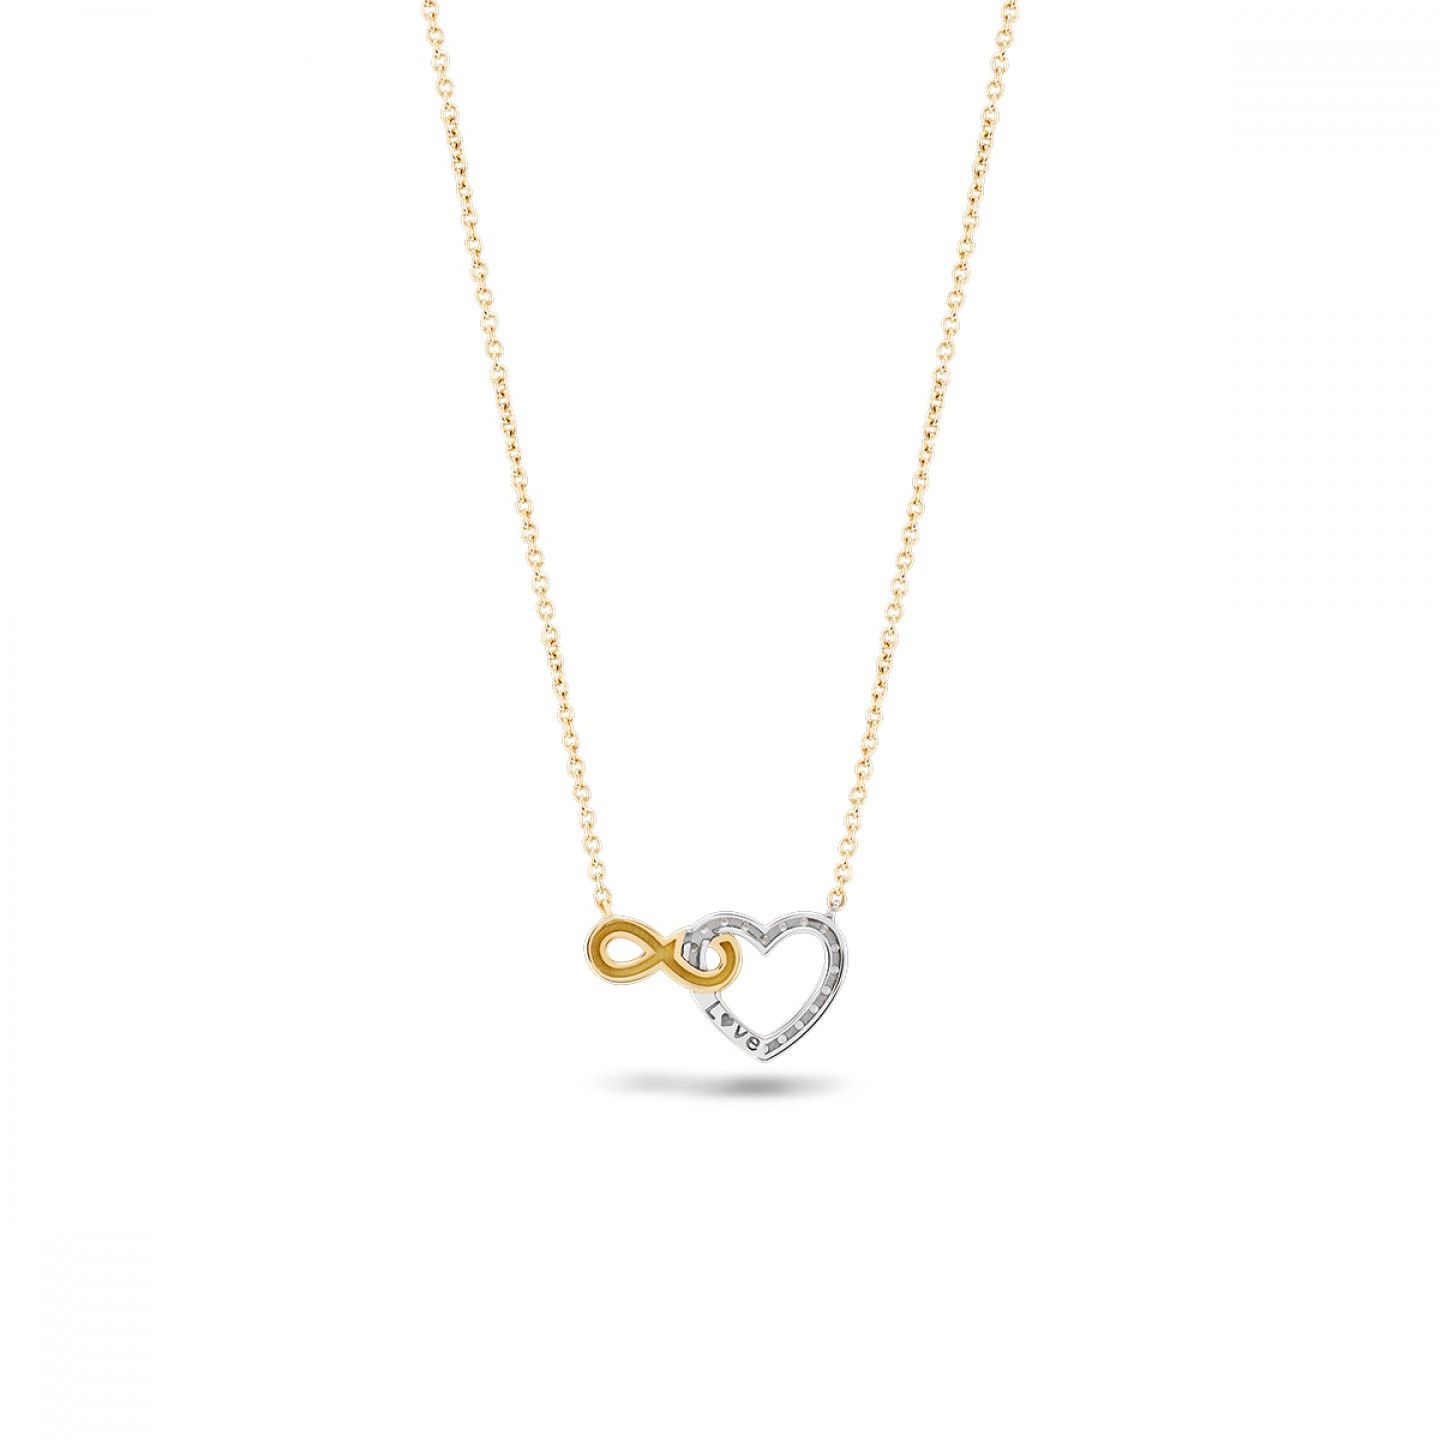 COLAR BOW GOLD INFINITE HEART I